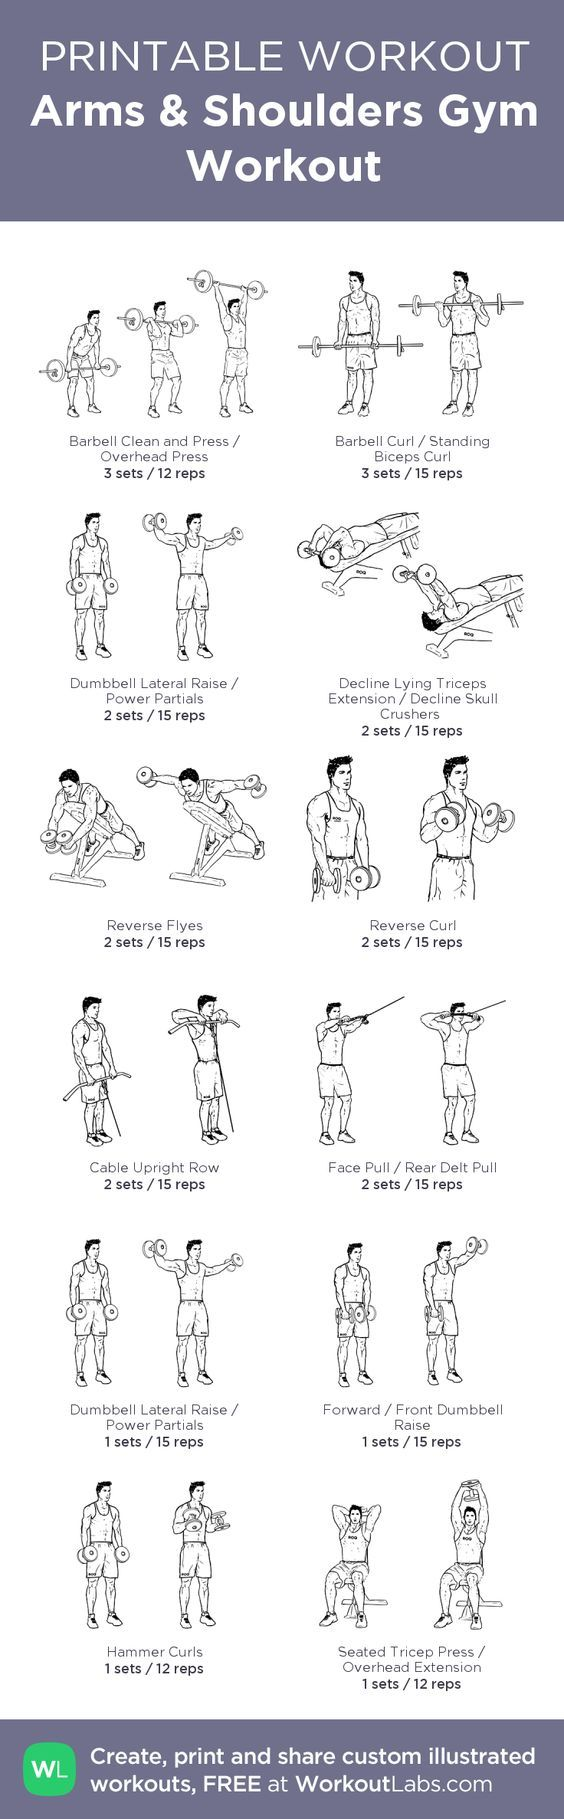 Great shoulder workout Shoulder presses 4 × 8-12 Arnold presses. 4x10 Bus drivers 4x10 Into front raises 4×10 these burn Posterior flies 4 x 10-12  Lateral raises 4x10-15 Shrugs moderate weight 3-5 sec static holds 4x 10-12 reps